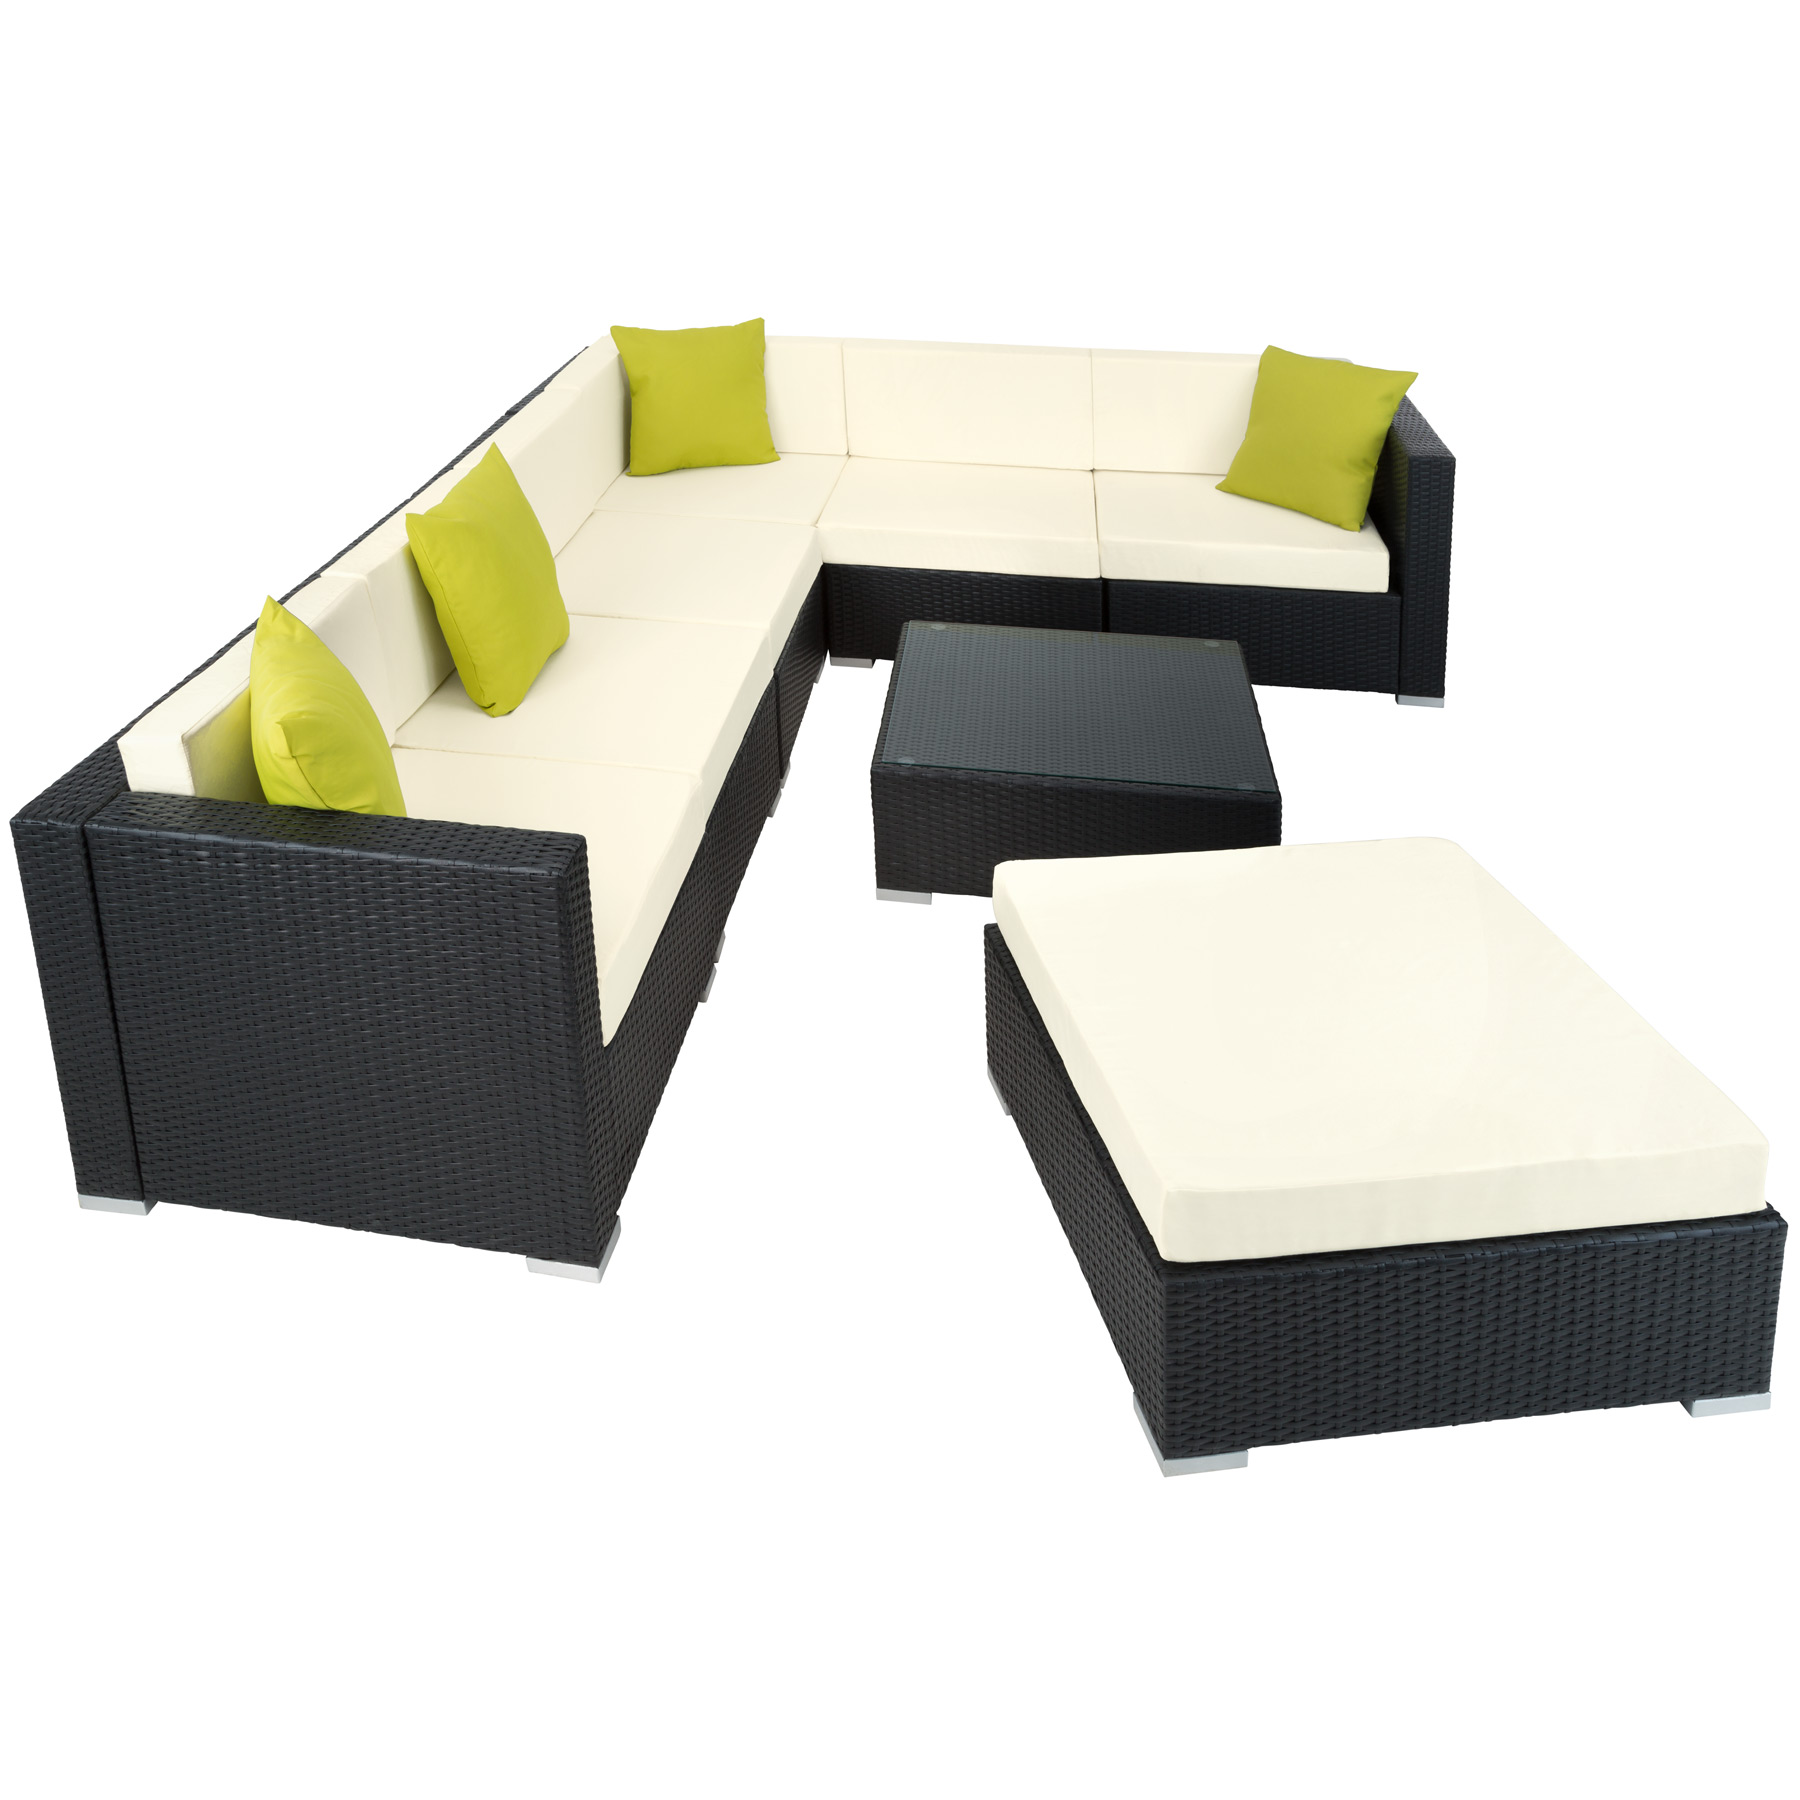 aluminium luxury rattan garden furniture sofa lounge set. Black Bedroom Furniture Sets. Home Design Ideas